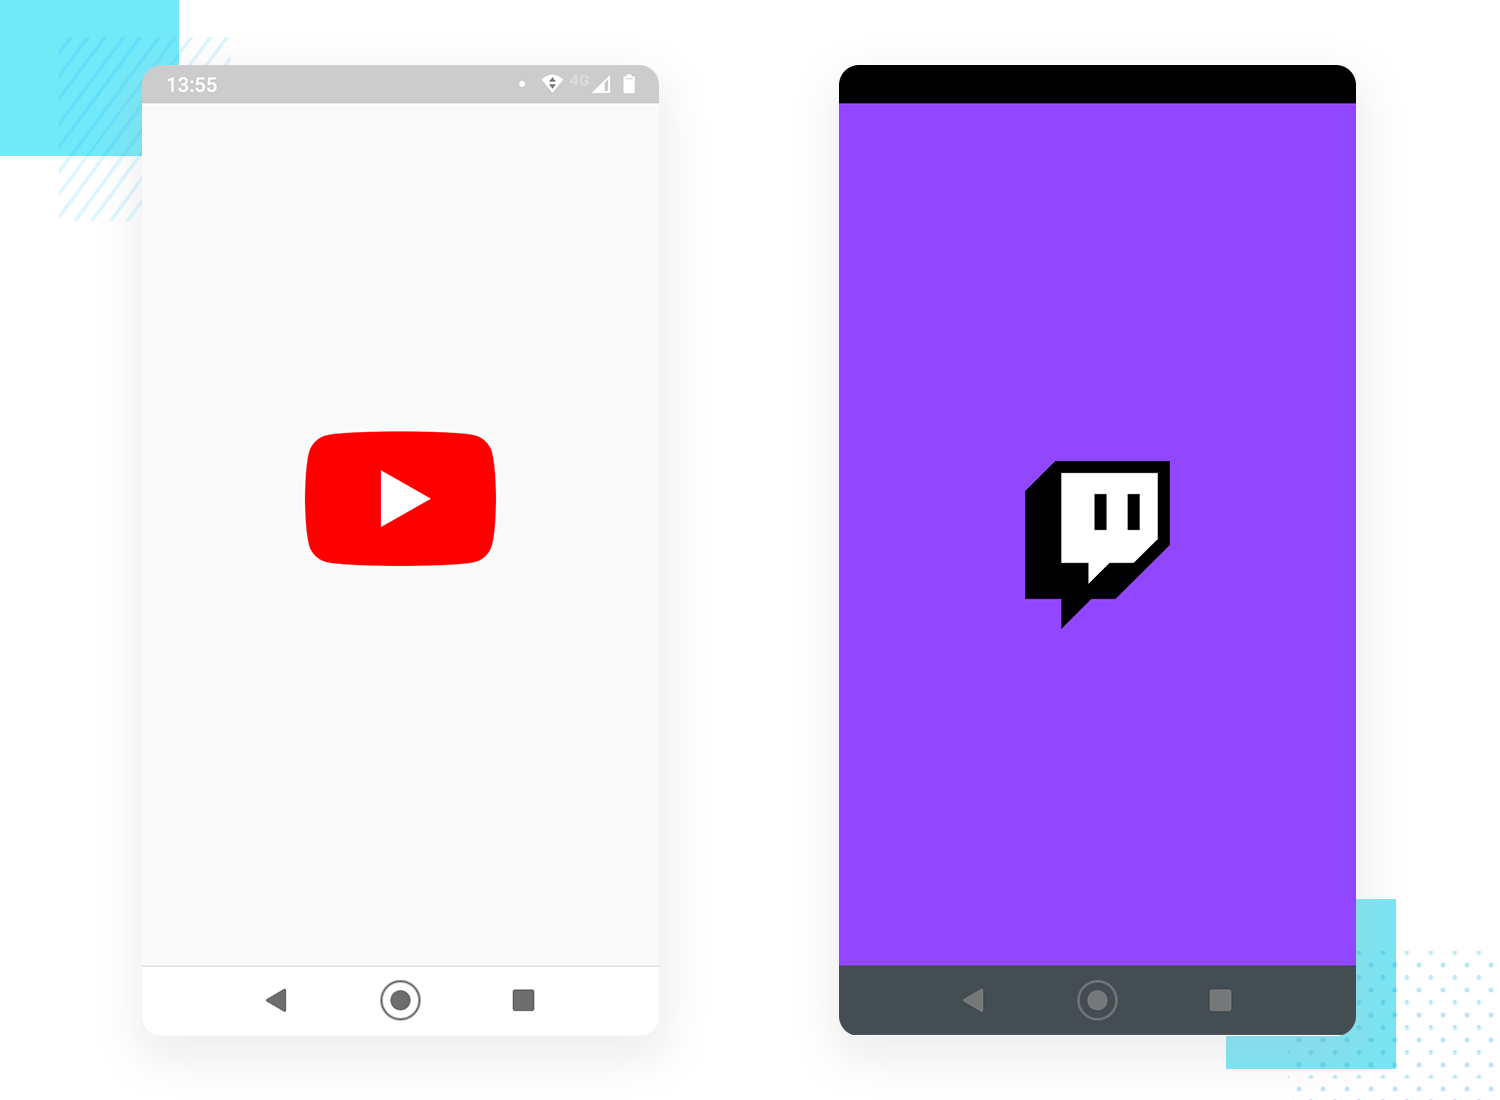 splash screen design examples from youtube and twitch